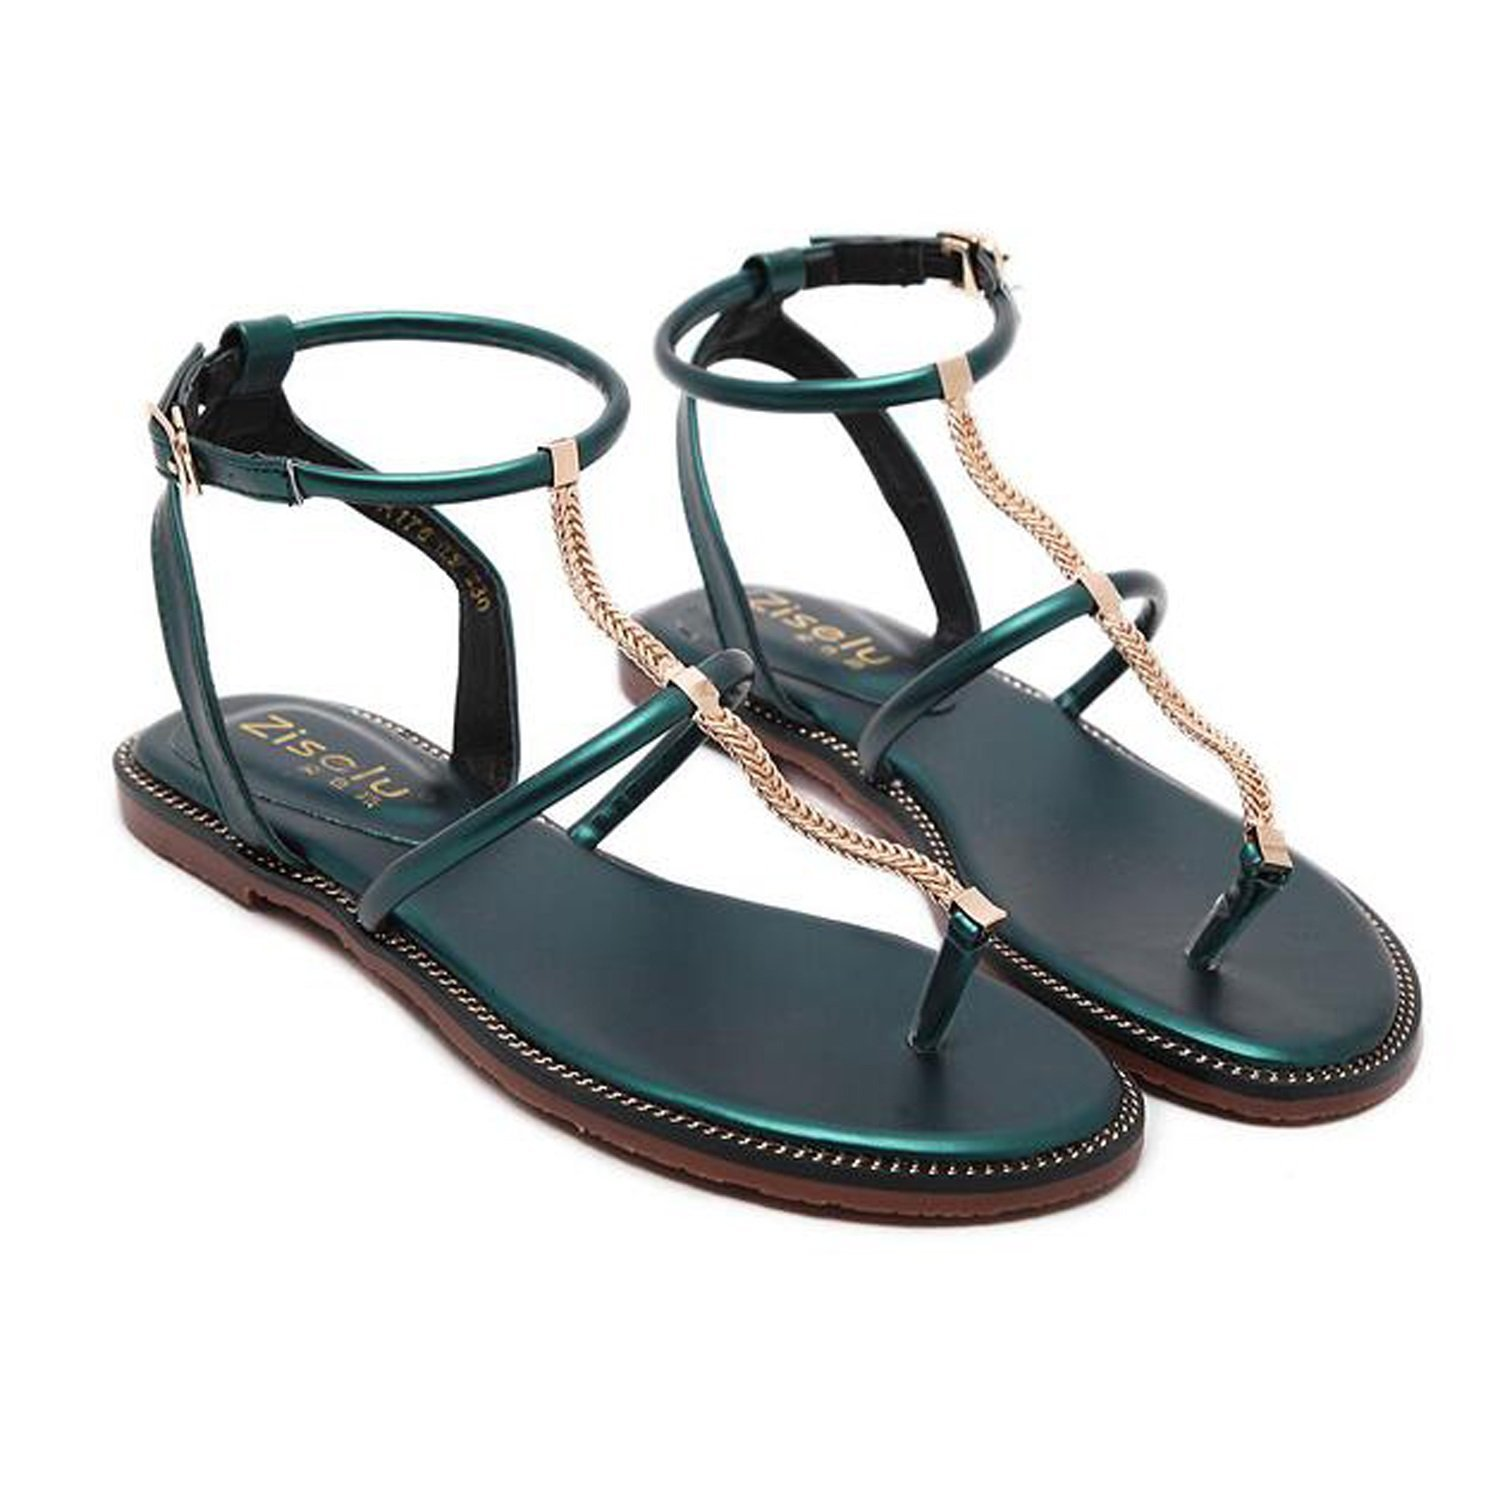 06b7082e1b2d Get Quotations · ZZZJR Women s Ankle Strap With T-Bar Sandals Flat Shoes  Casual Summer Shoes Round Peep